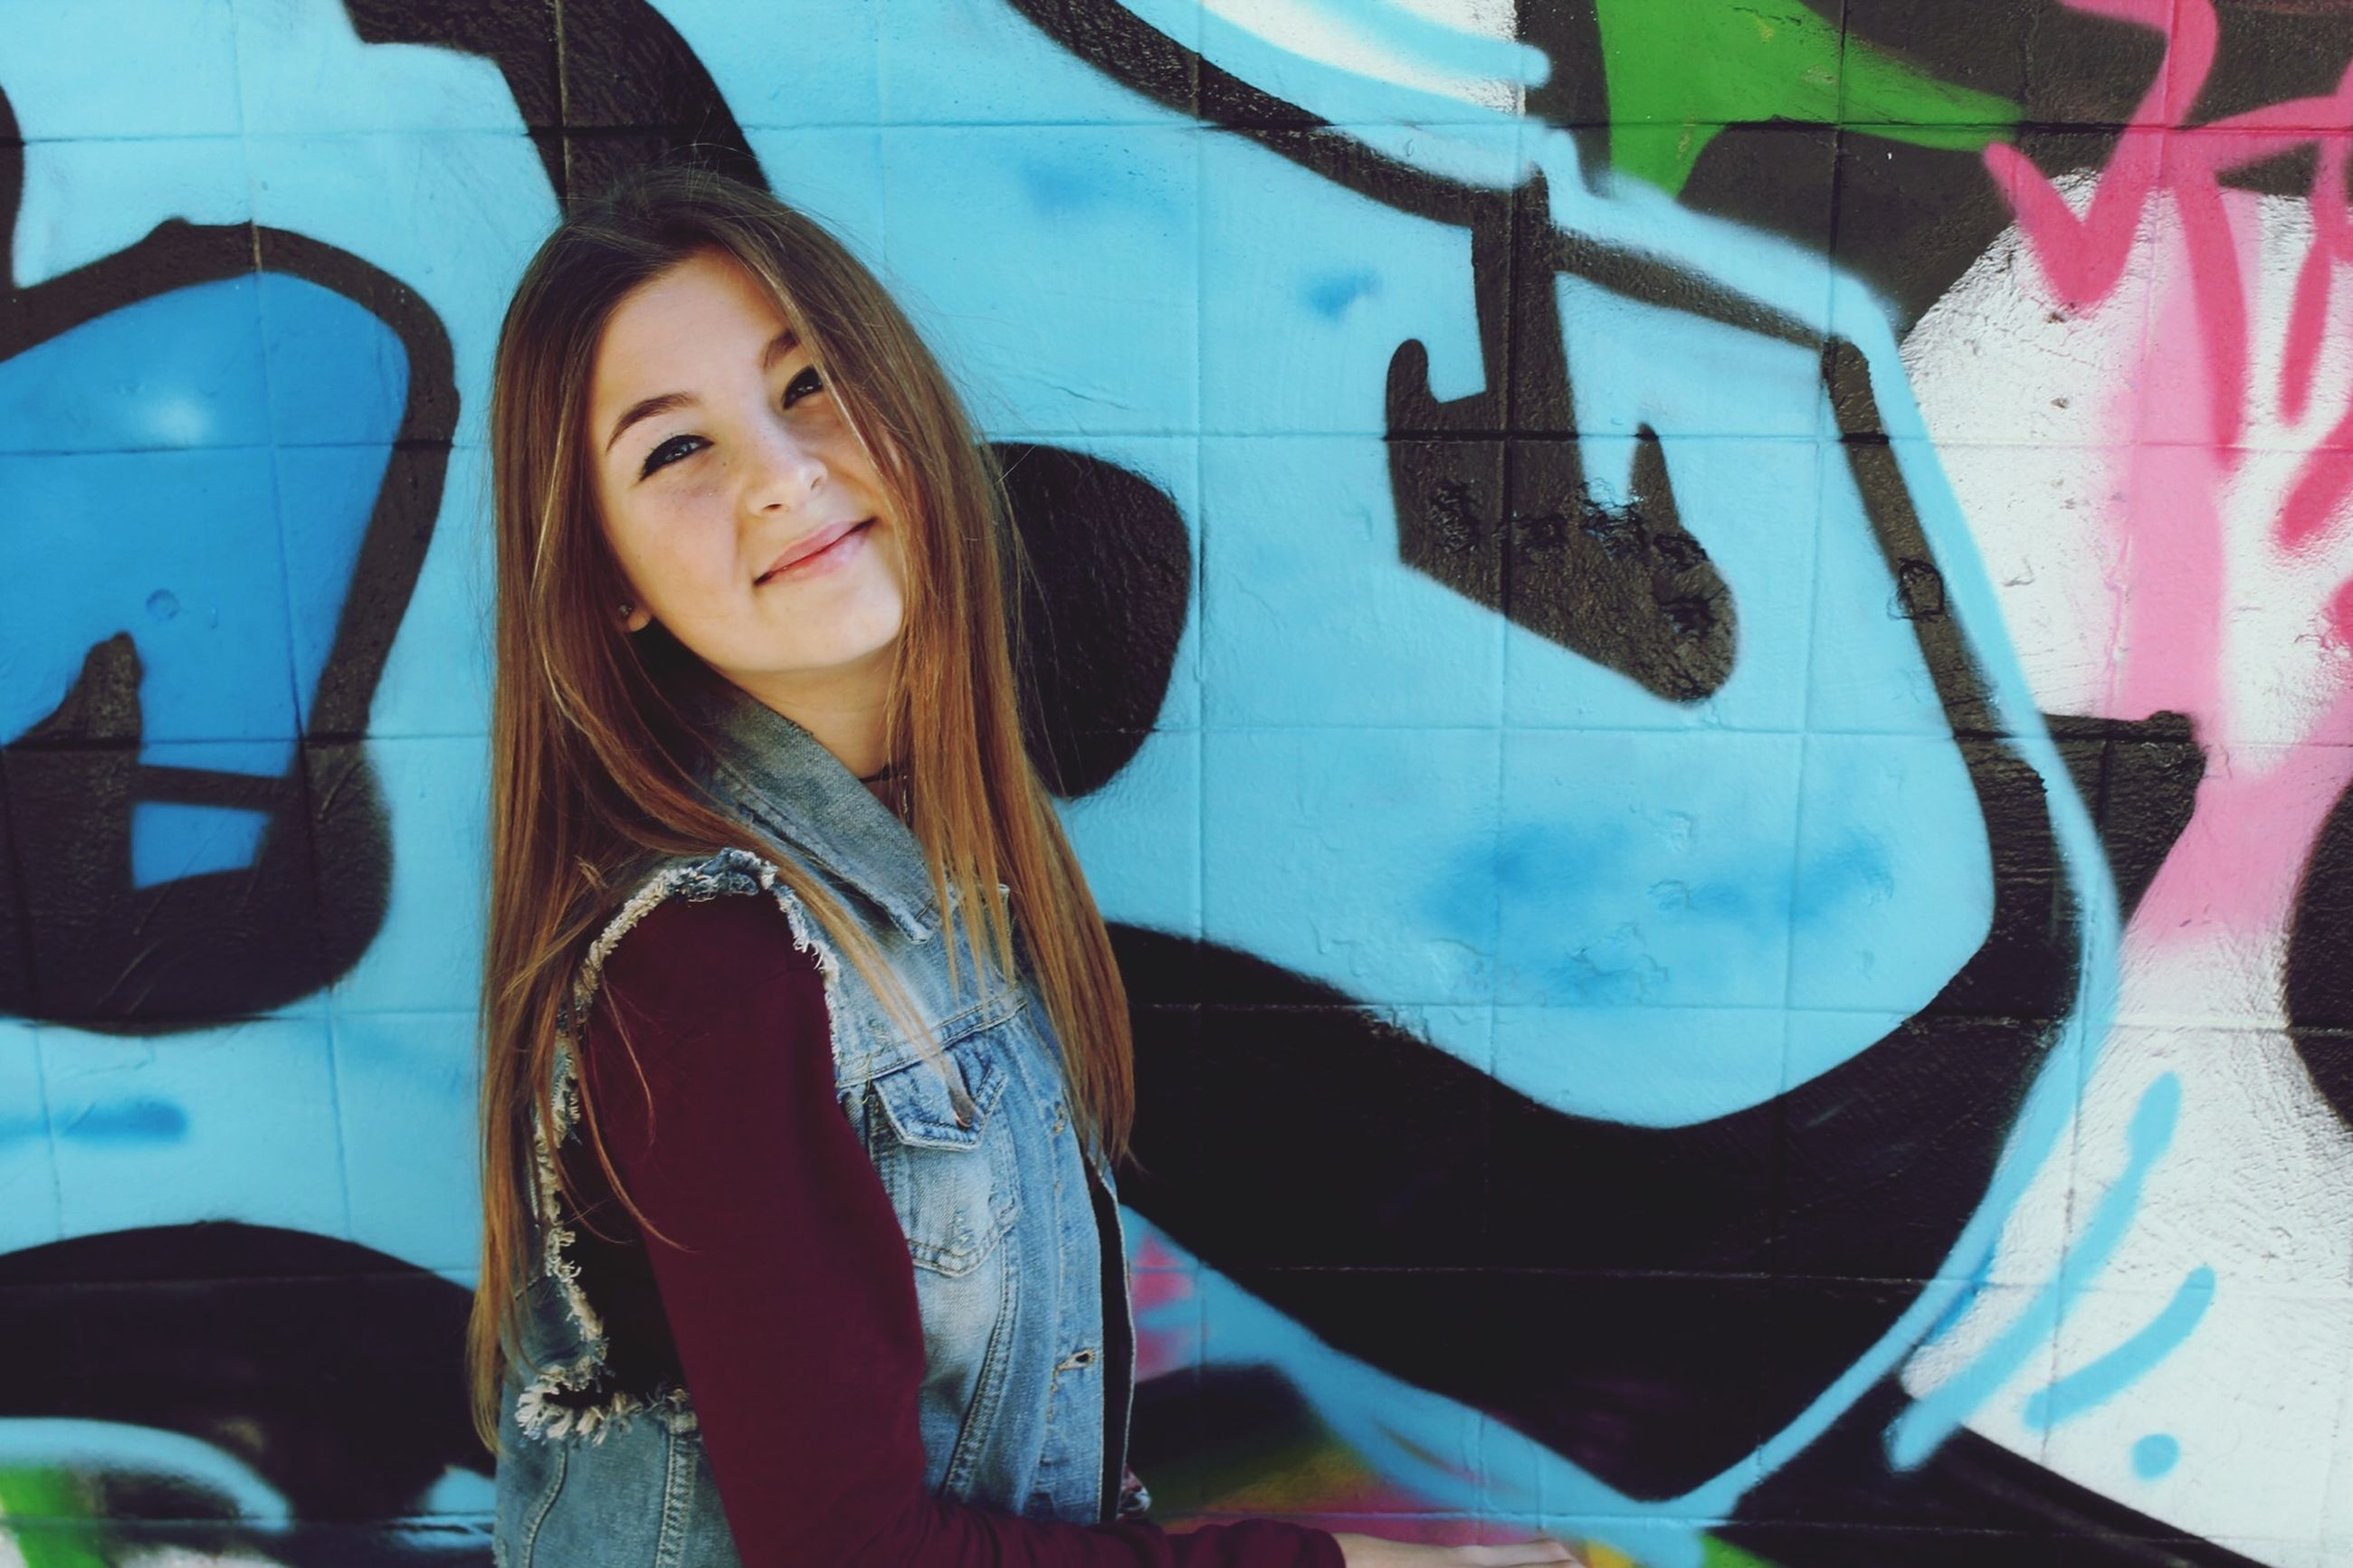 young adult, young women, lifestyles, looking at camera, person, portrait, long hair, front view, casual clothing, standing, graffiti, leisure activity, smiling, waist up, three quarter length, wall - building feature, happiness